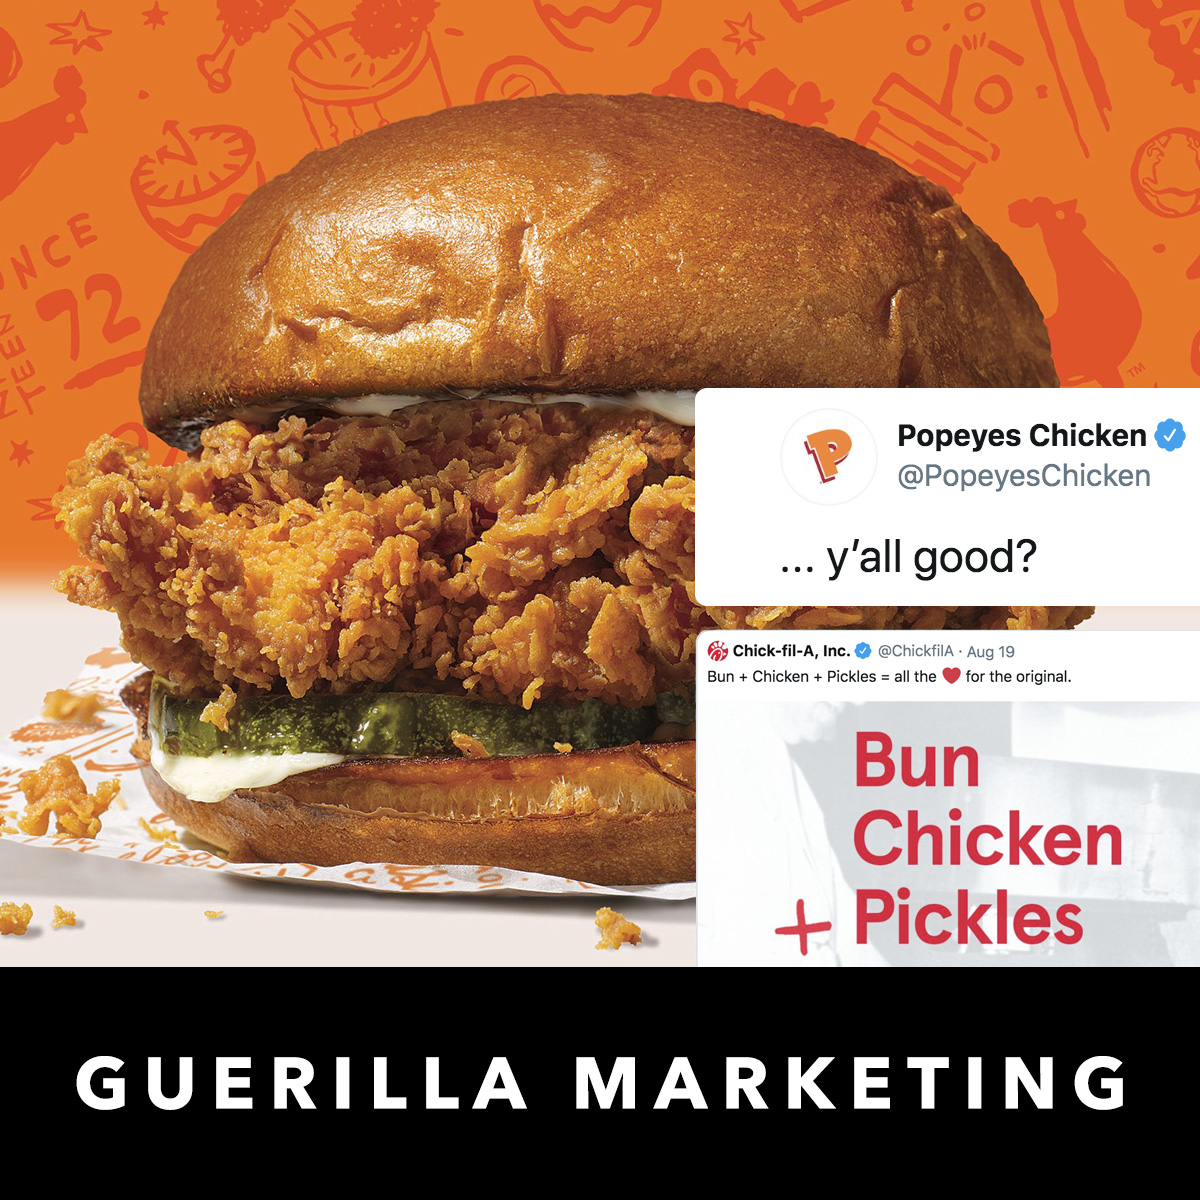 Popeyes vs Chick-Fil-A Guerilla Marketing